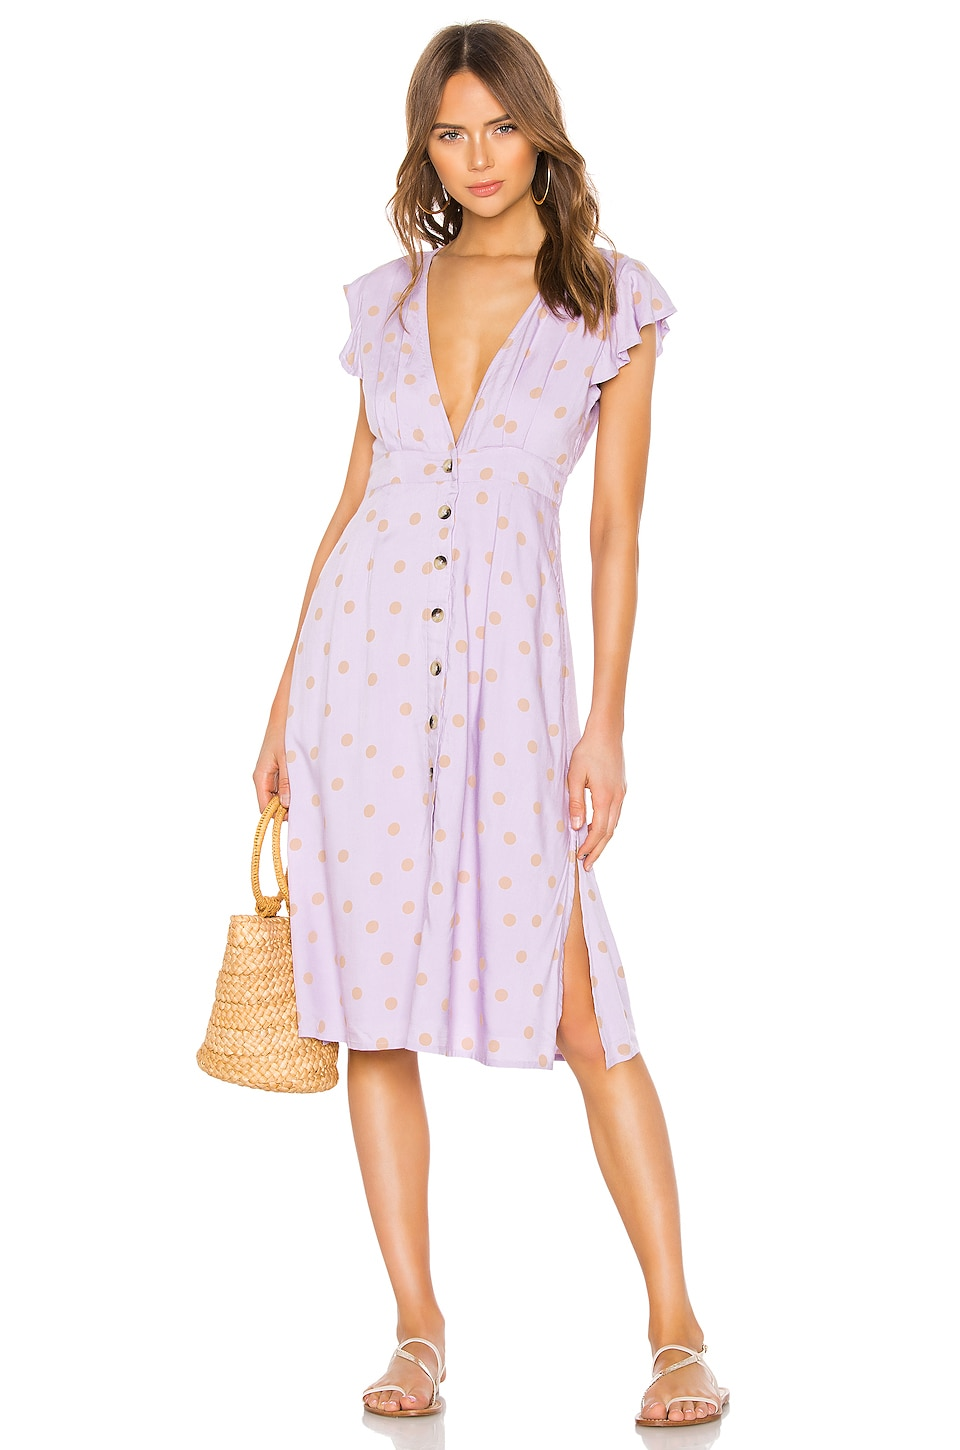 X REVOLVE Jordan Dress             L*SPACE                                                                                                                                         Sale price:                                                                       CA$ 96.49                                                                  Previous price:                                                                       CA$ 191.59 10